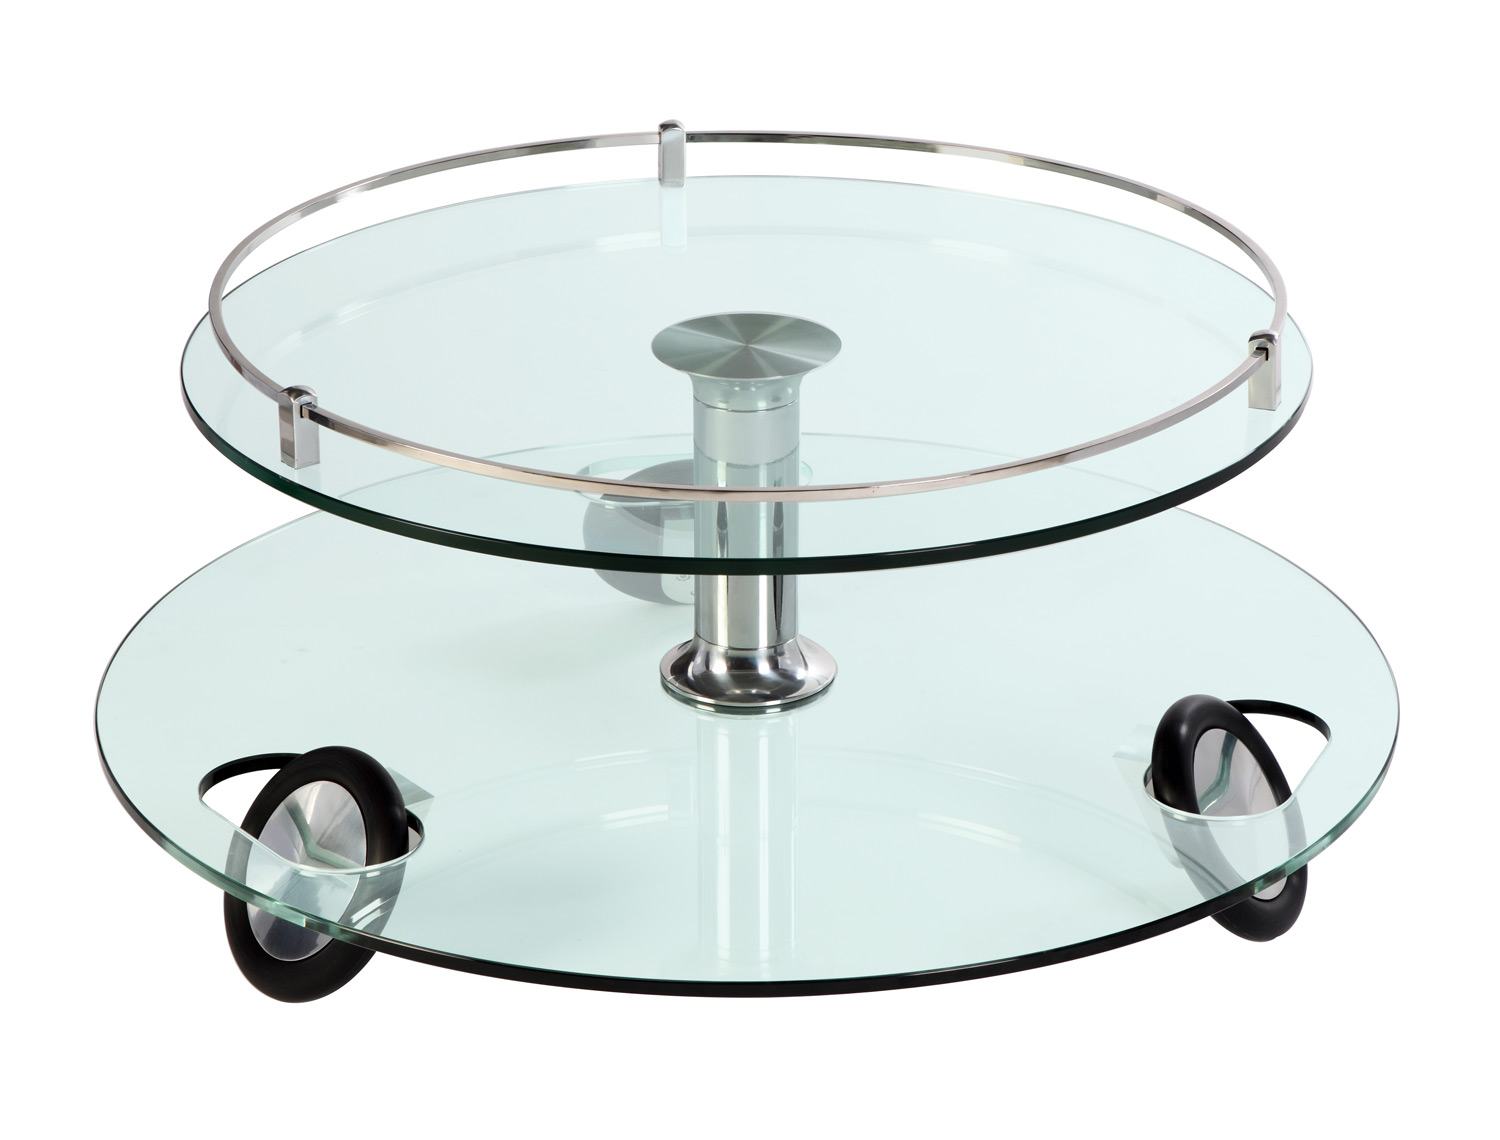 Chintaly Imports 8178 Castered Cocktail Table - Clear Glass/Chrome